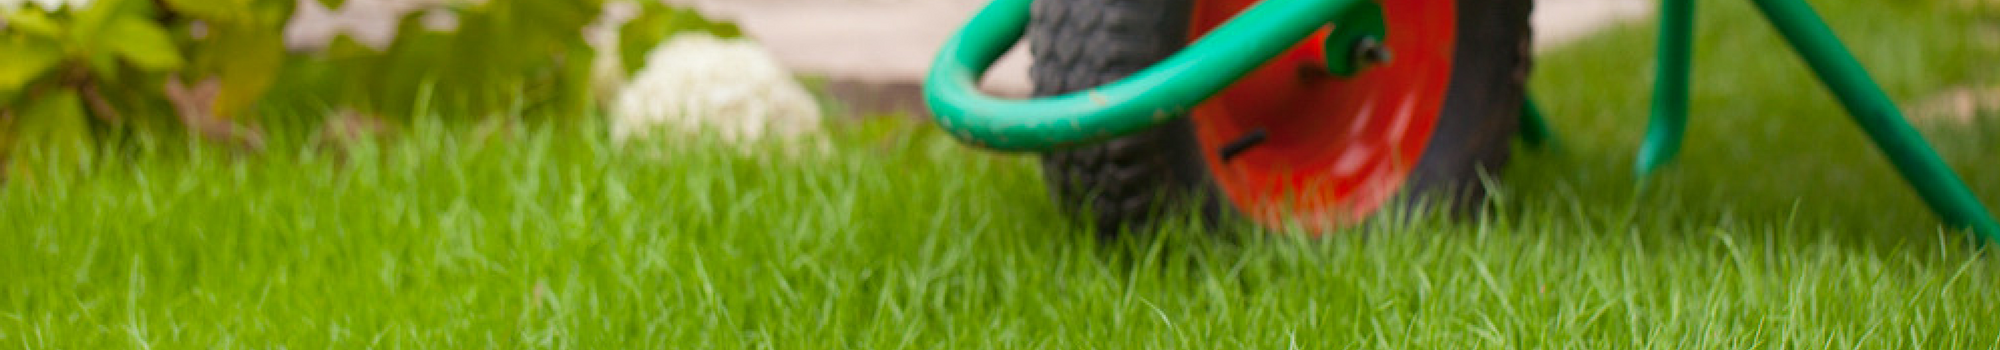 Kamloops |  Lawn Care Technician - Featured Image